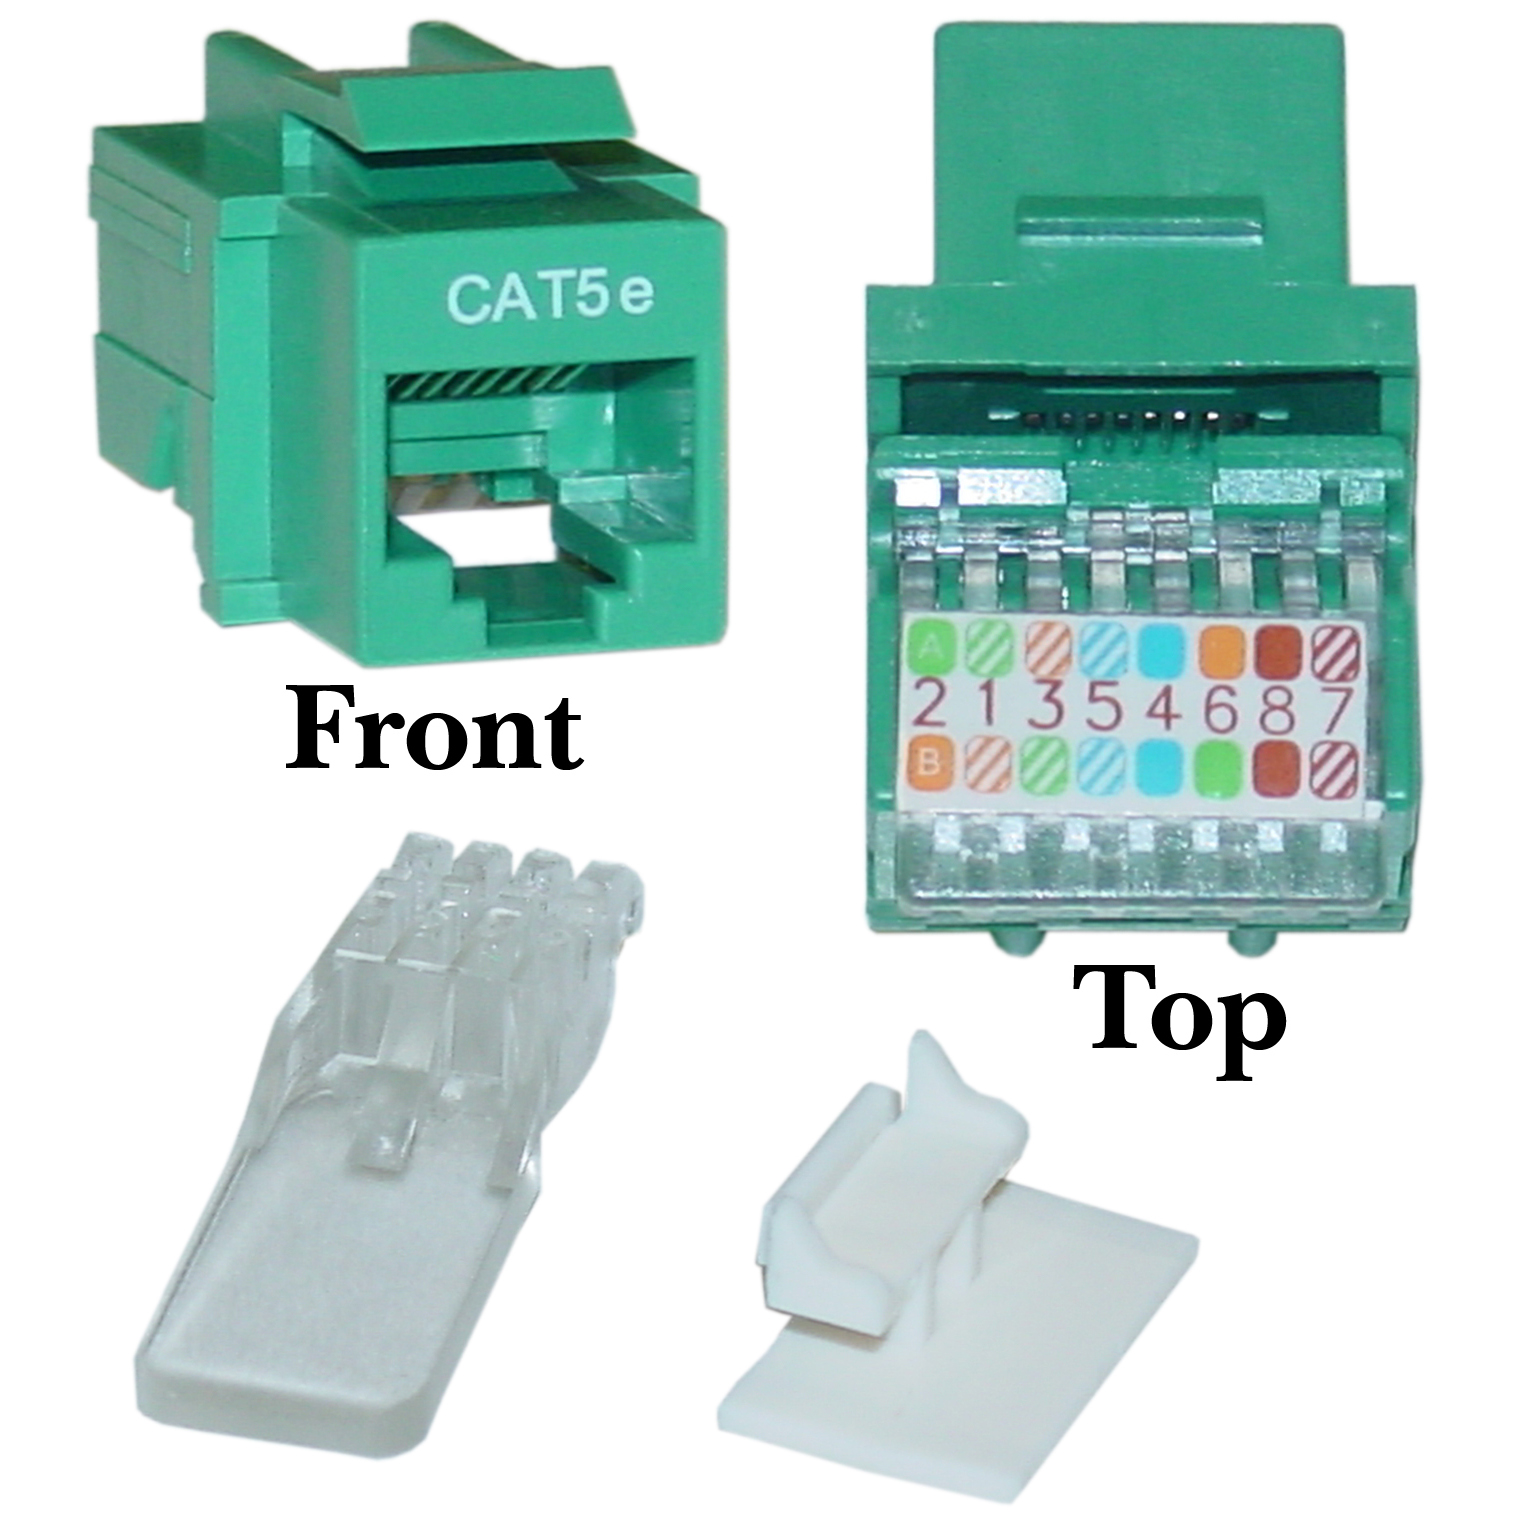 311 120gr green cat5e rj45 keystone jack toolless cablewholesale cat 5e jack diagram at crackthecode.co